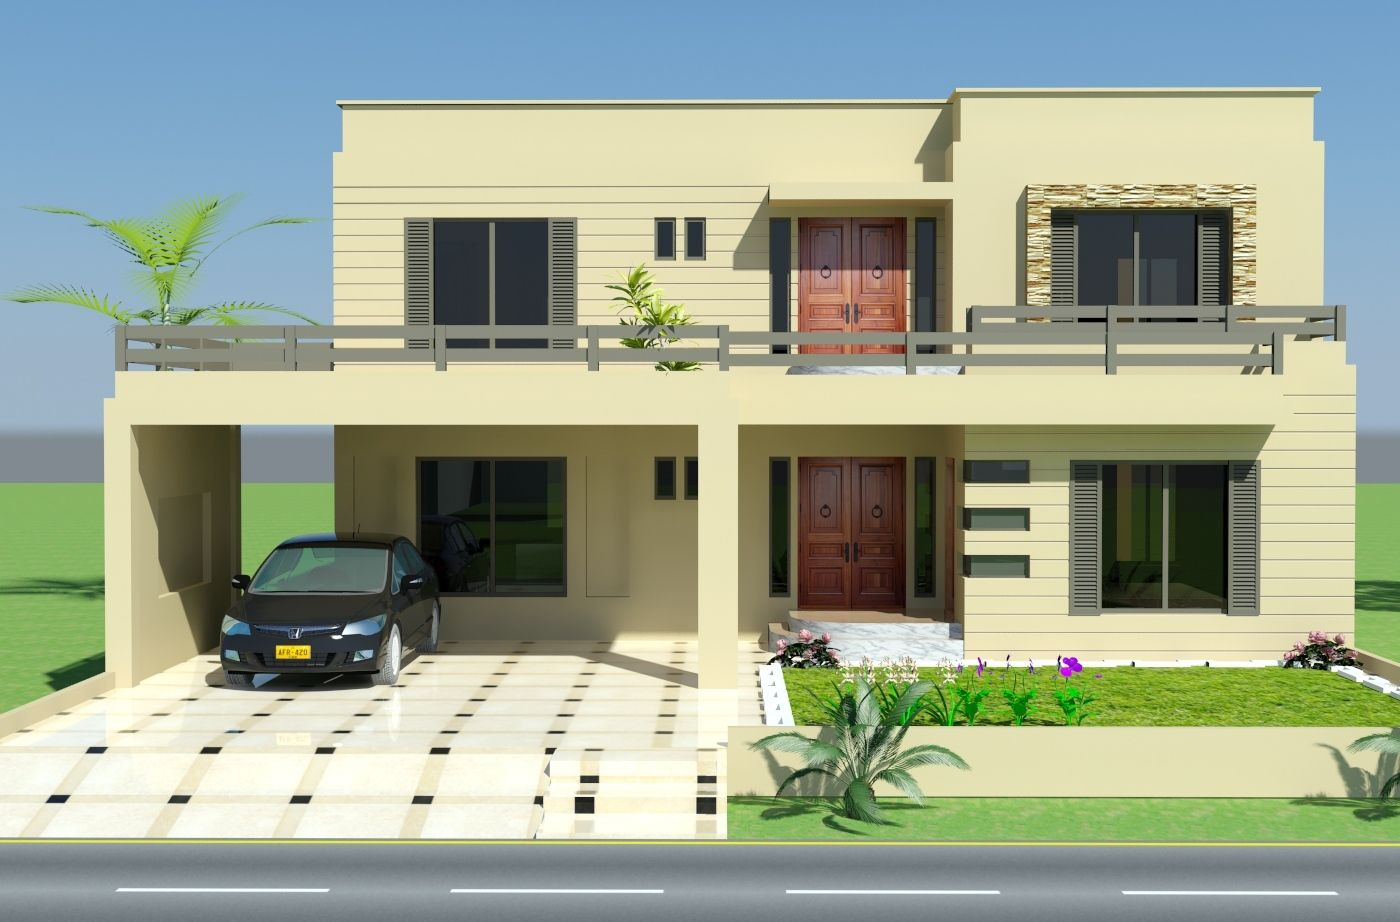 Exterior house design front elevation mi futura casa for House front window design